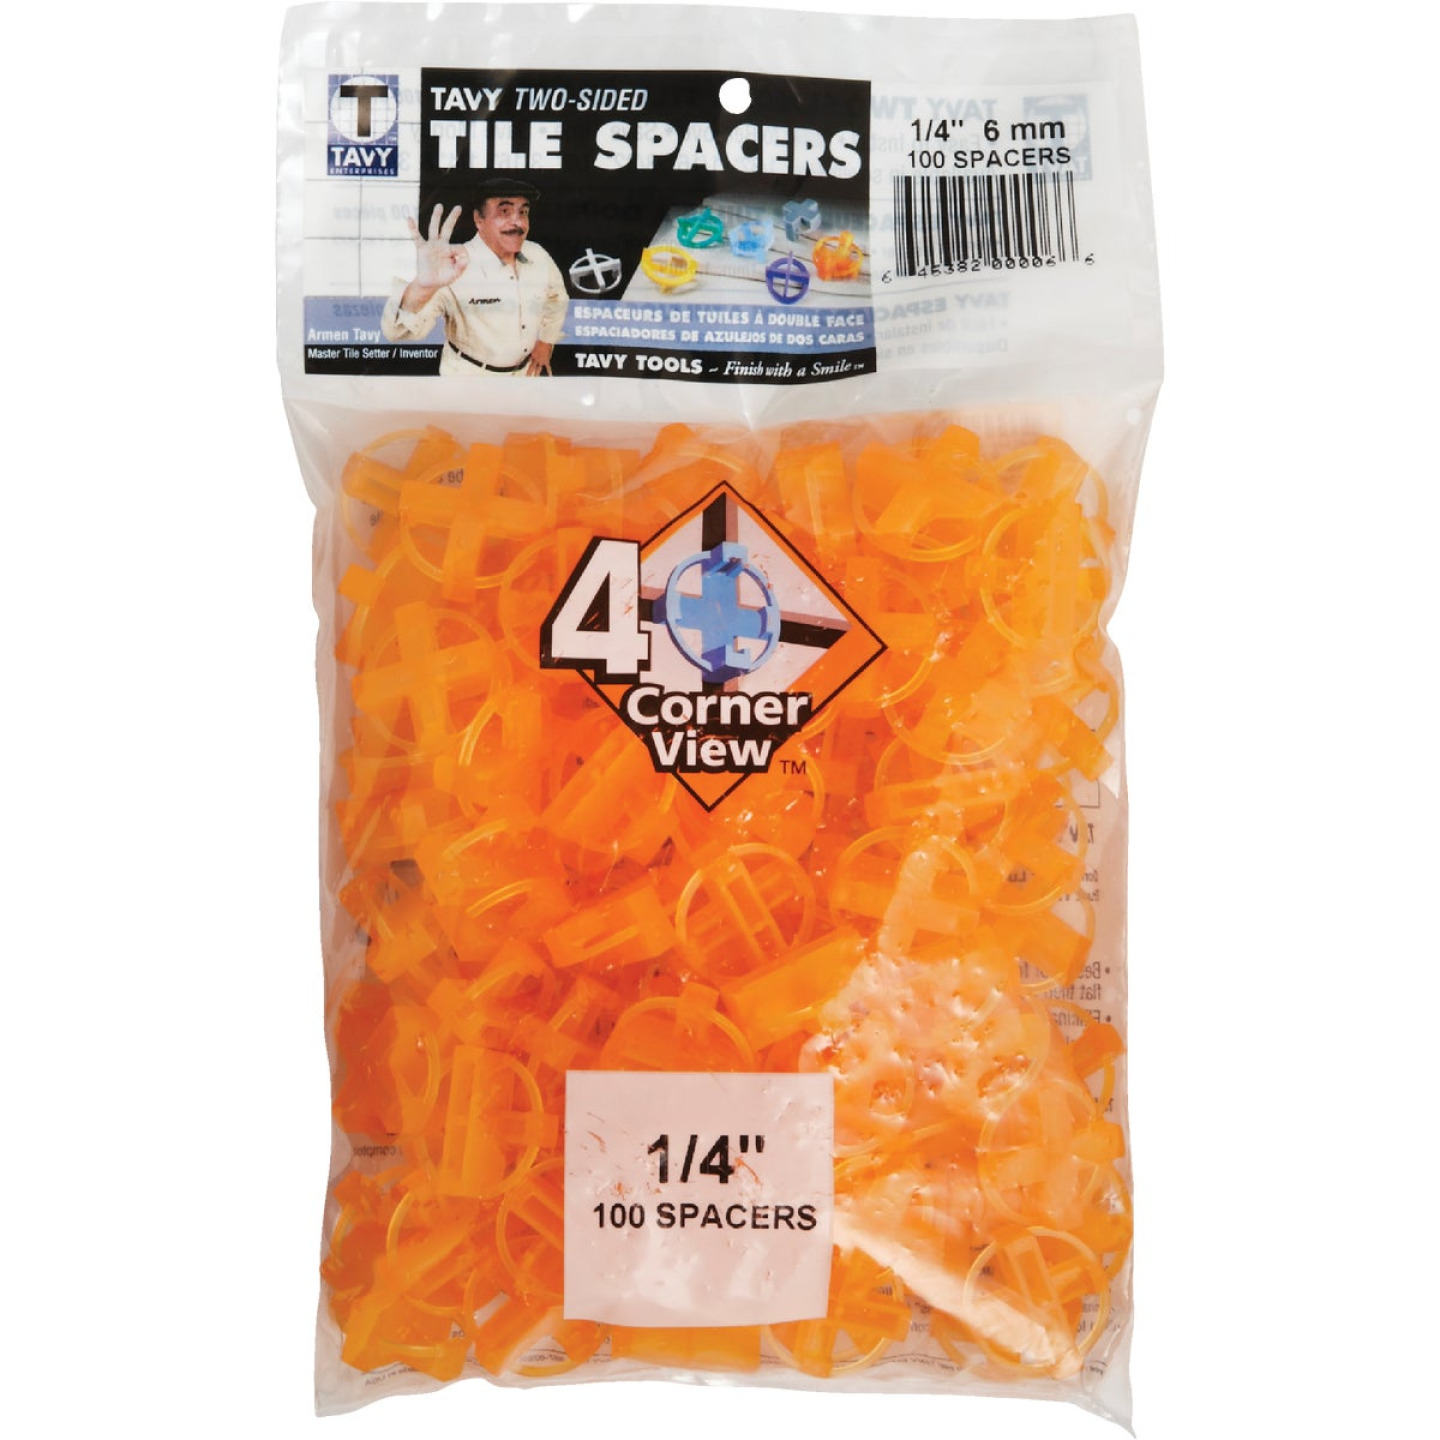 Marshalltown 1/4 In. Orange Tavy Tile Spacers (100-Pack) Image 2